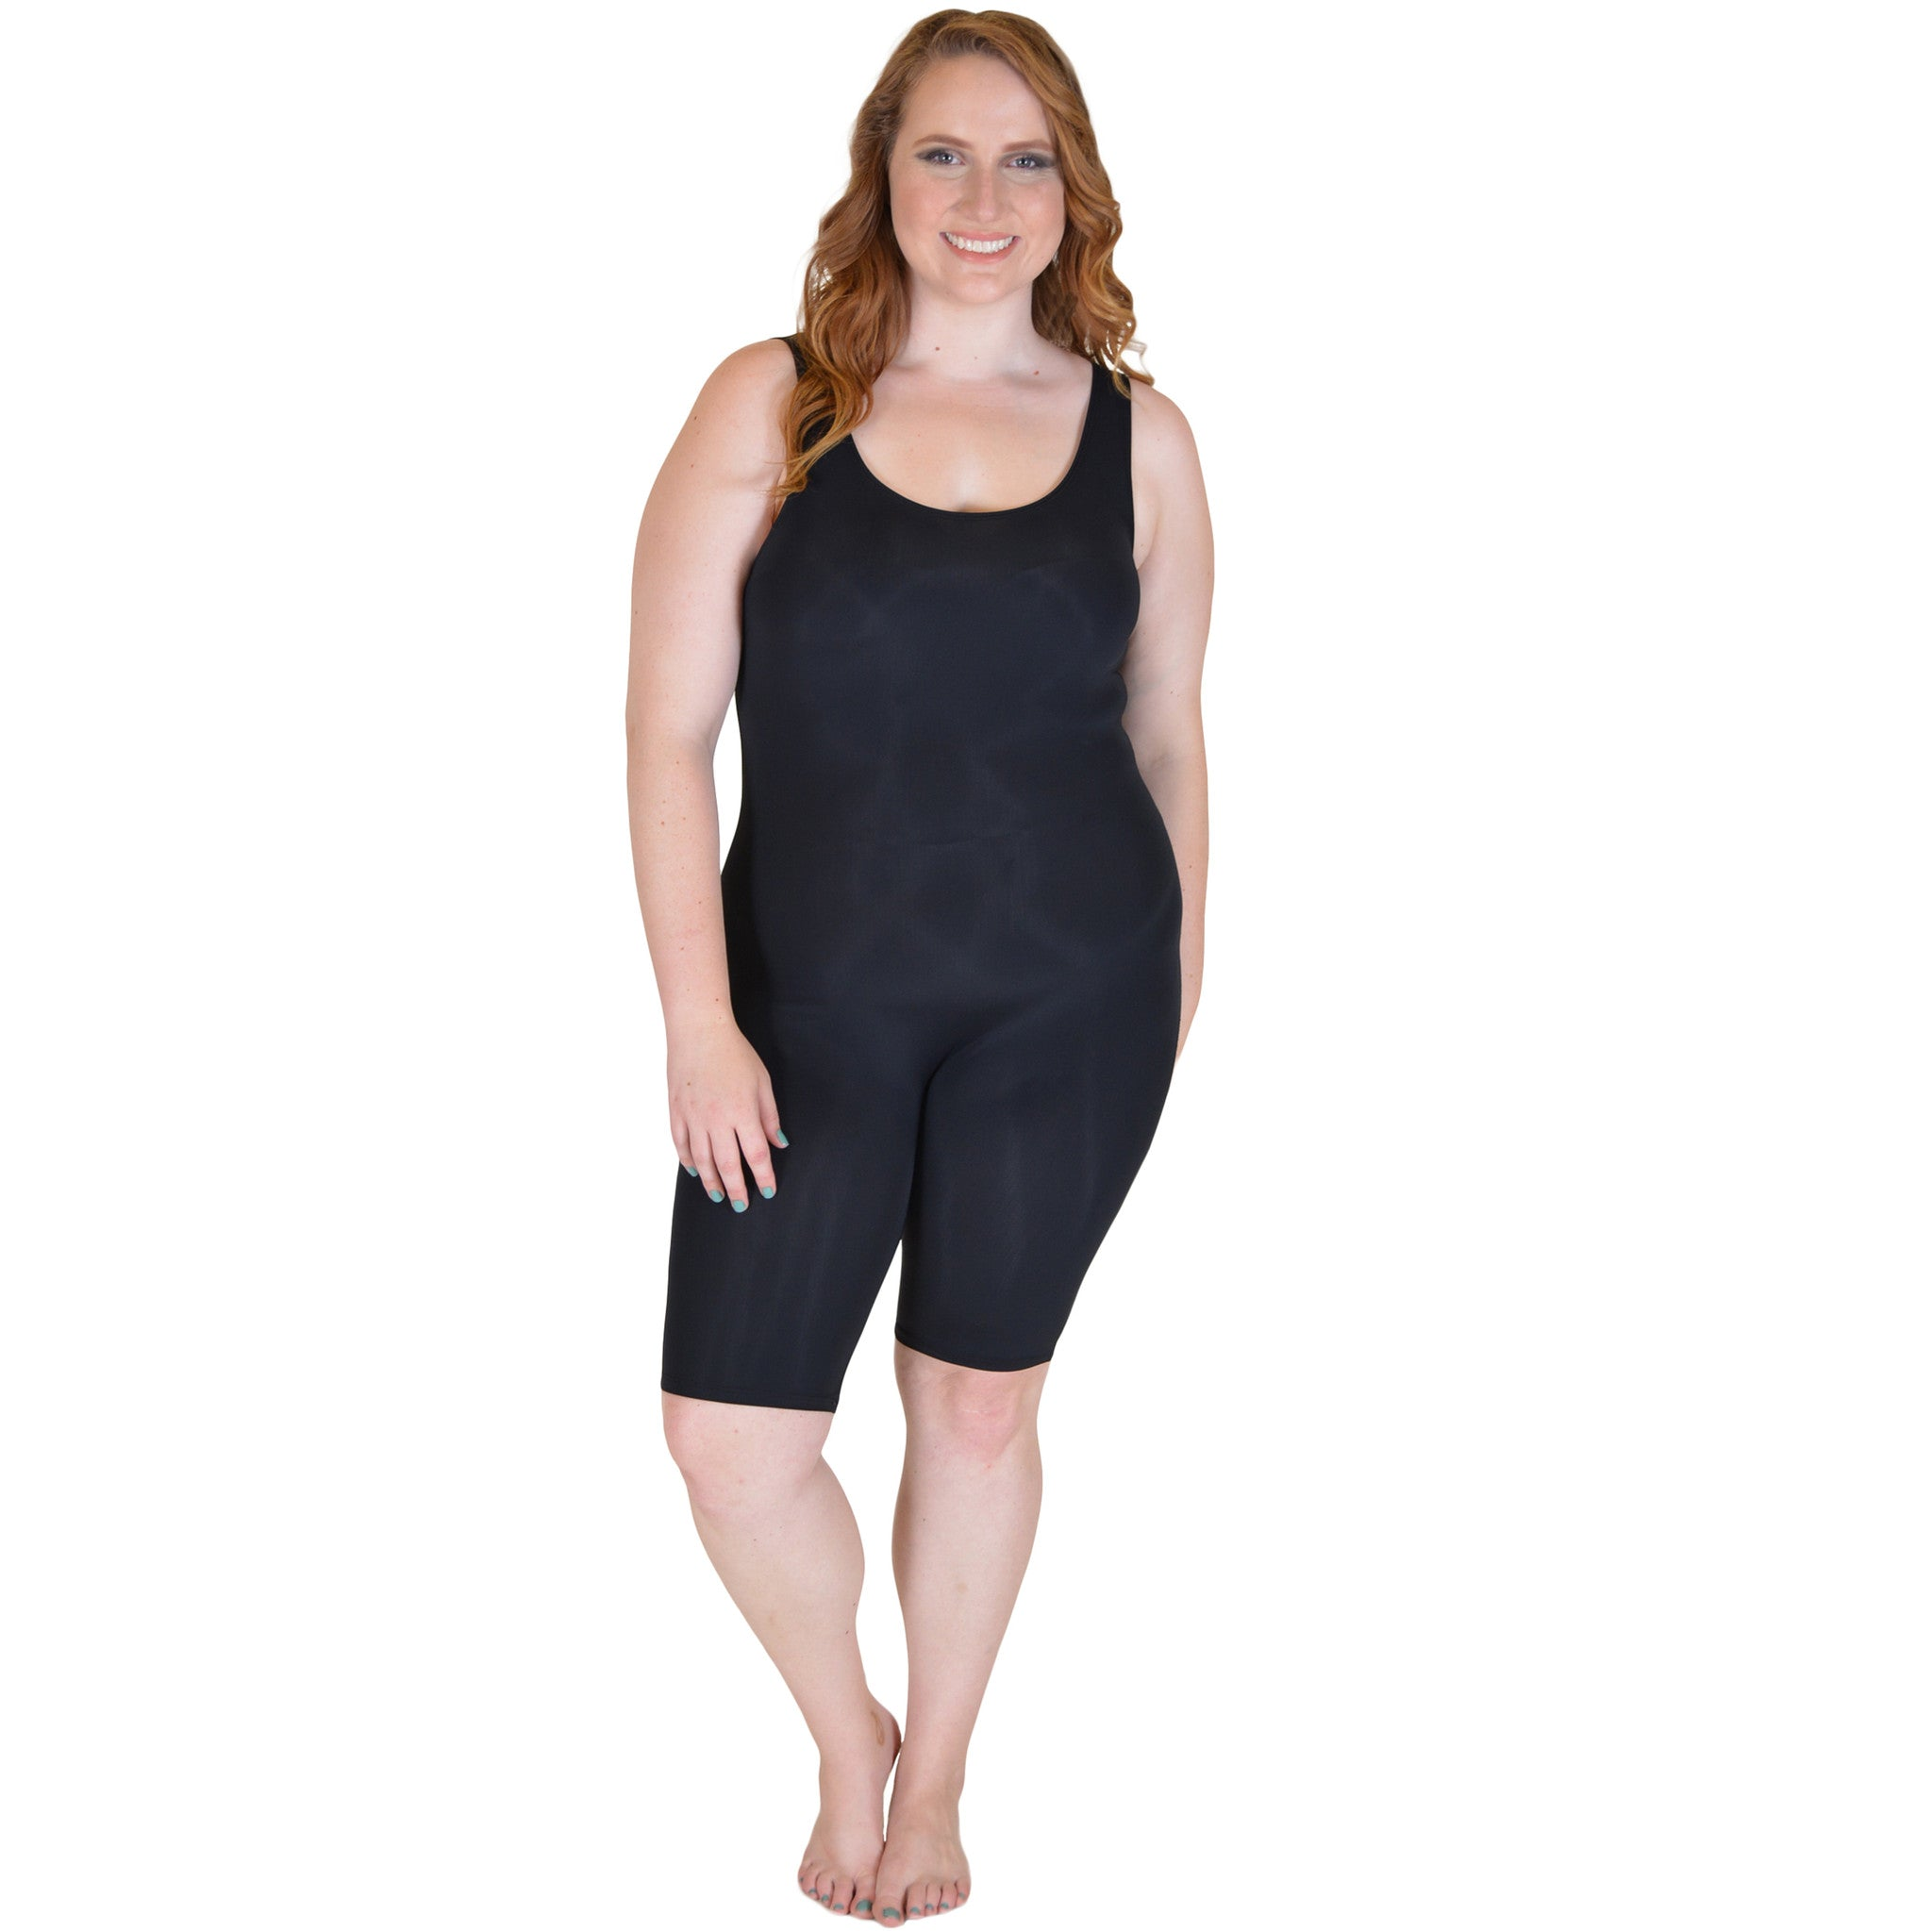 Women's Workout Tank Unitard NYLON BIKETARD